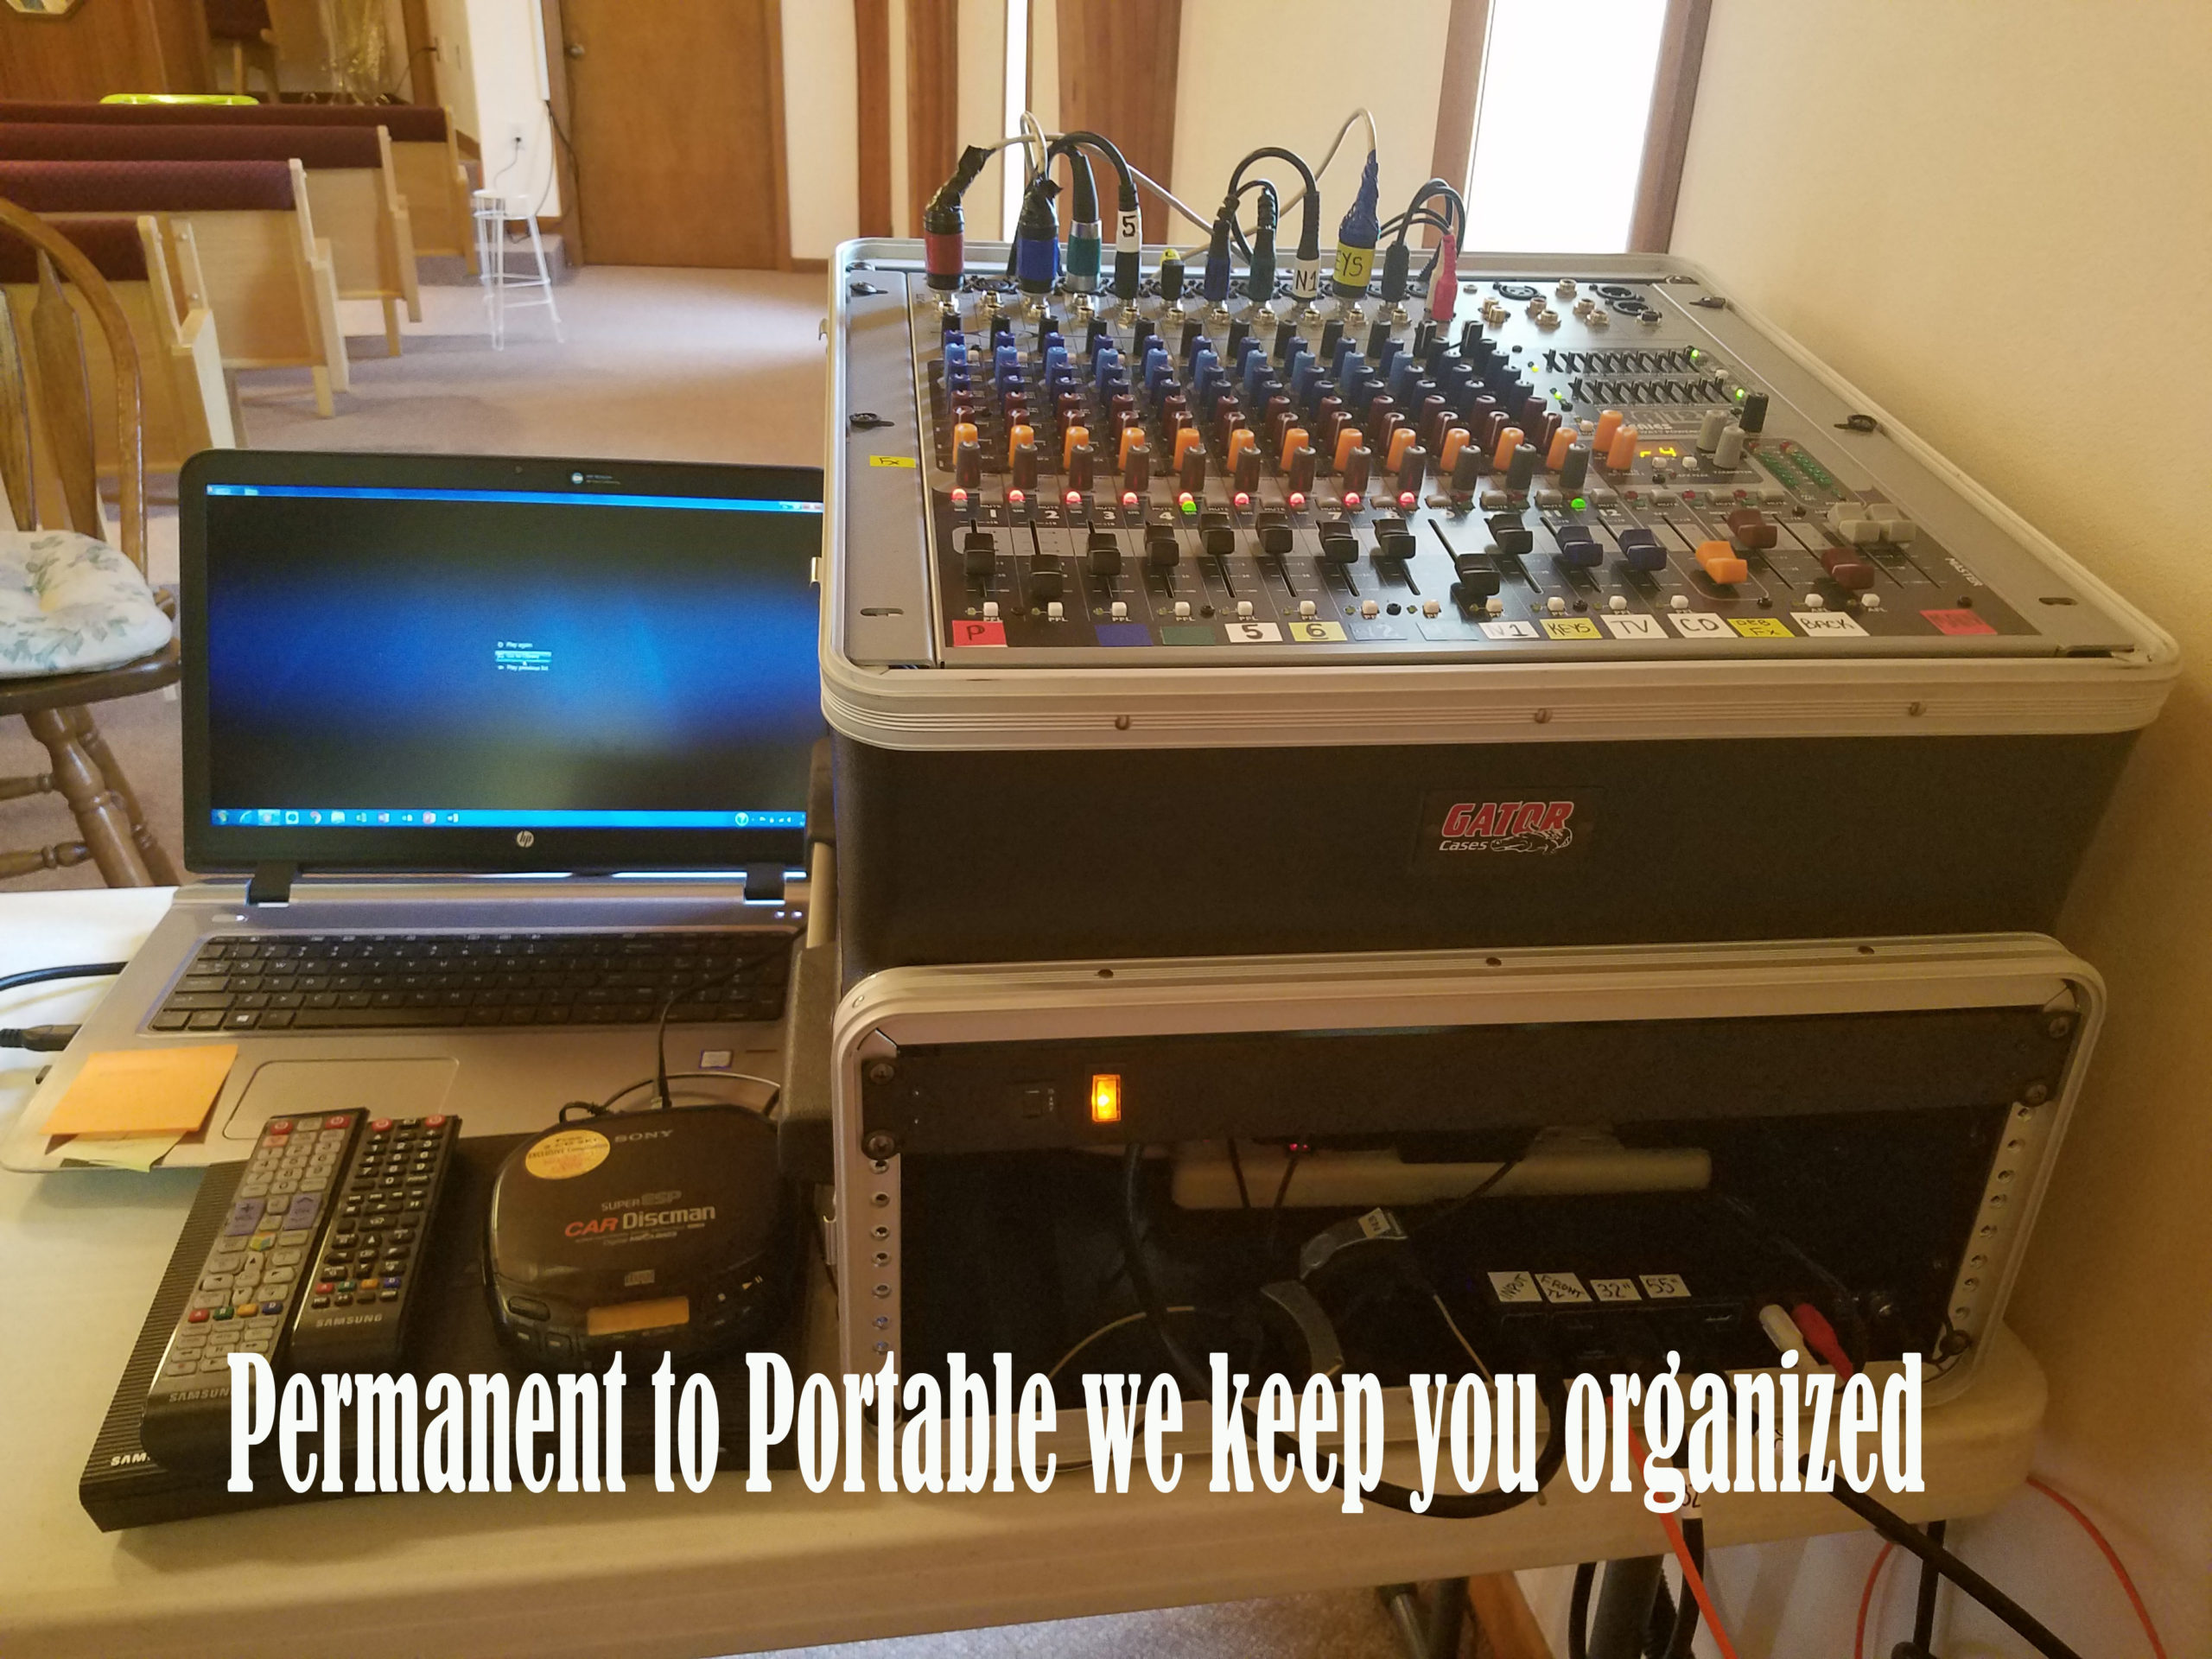 Permaanent to portable